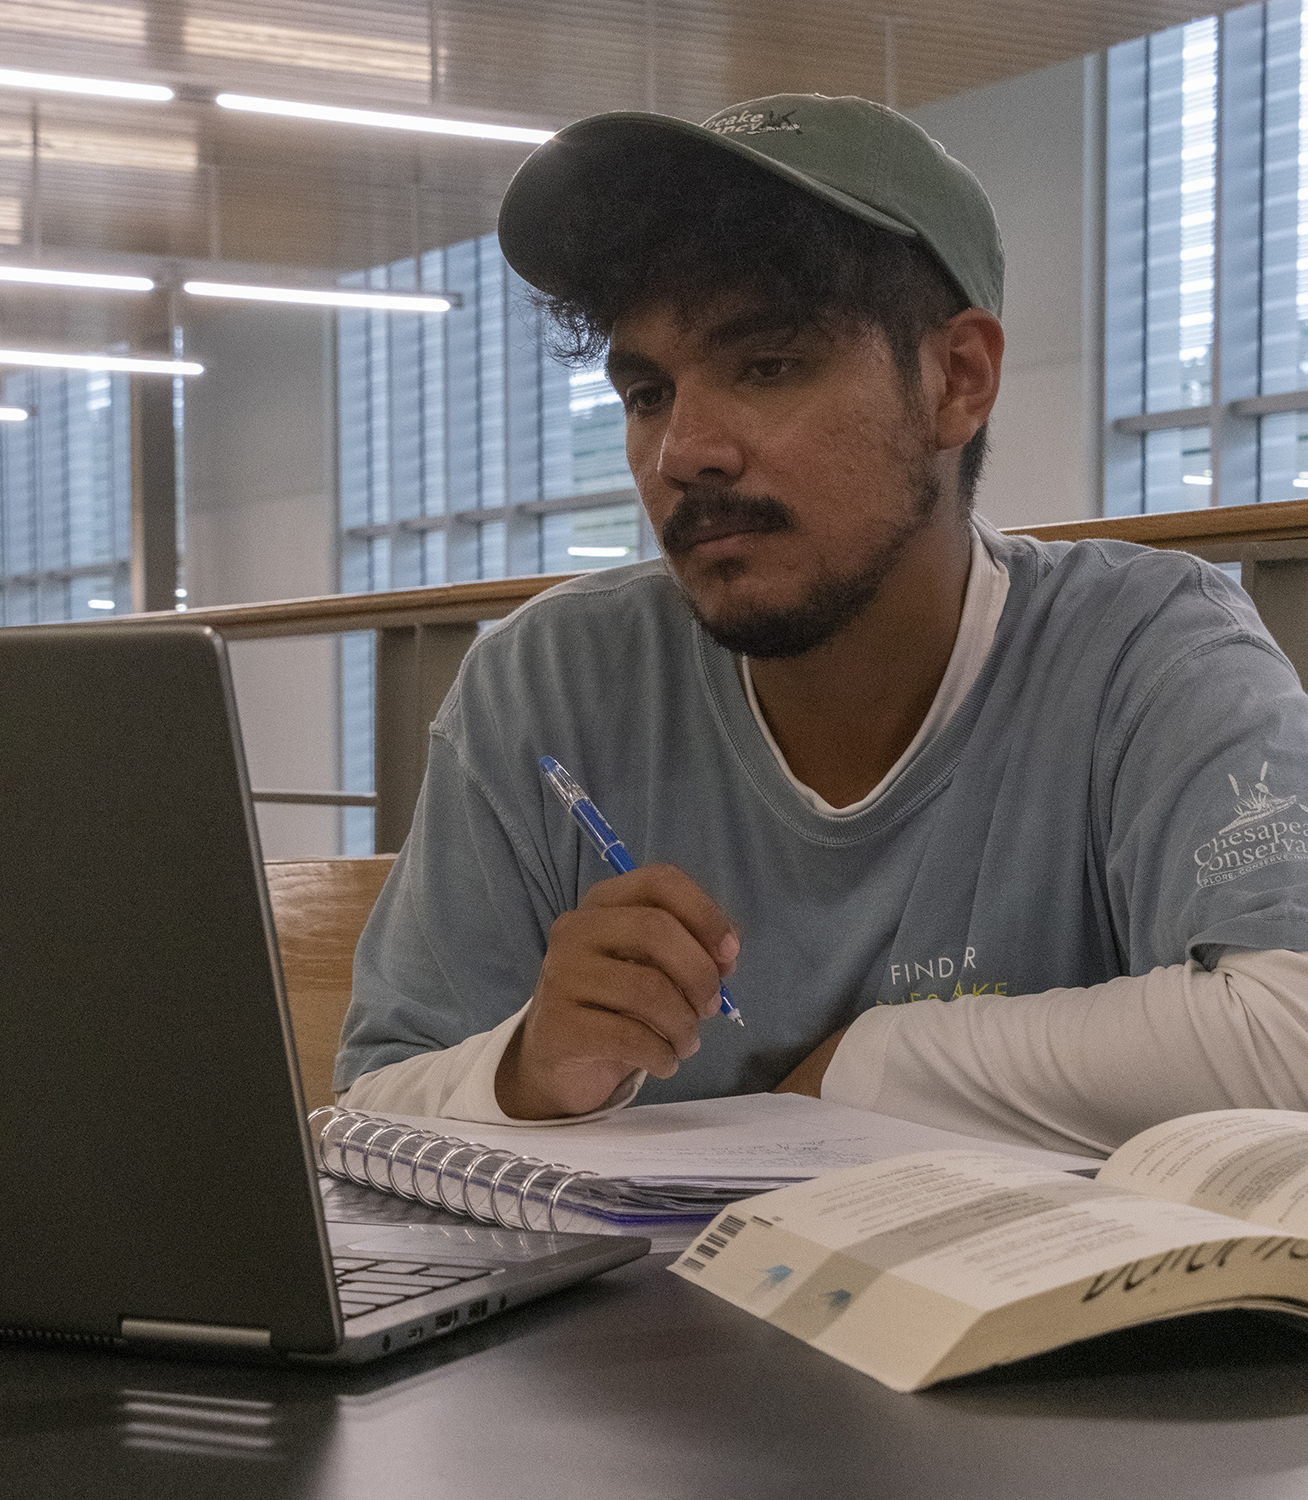 Daniel Salomon, a third-year transfer studies student, says he feels the pressure of becoming the first in his family to go to college.